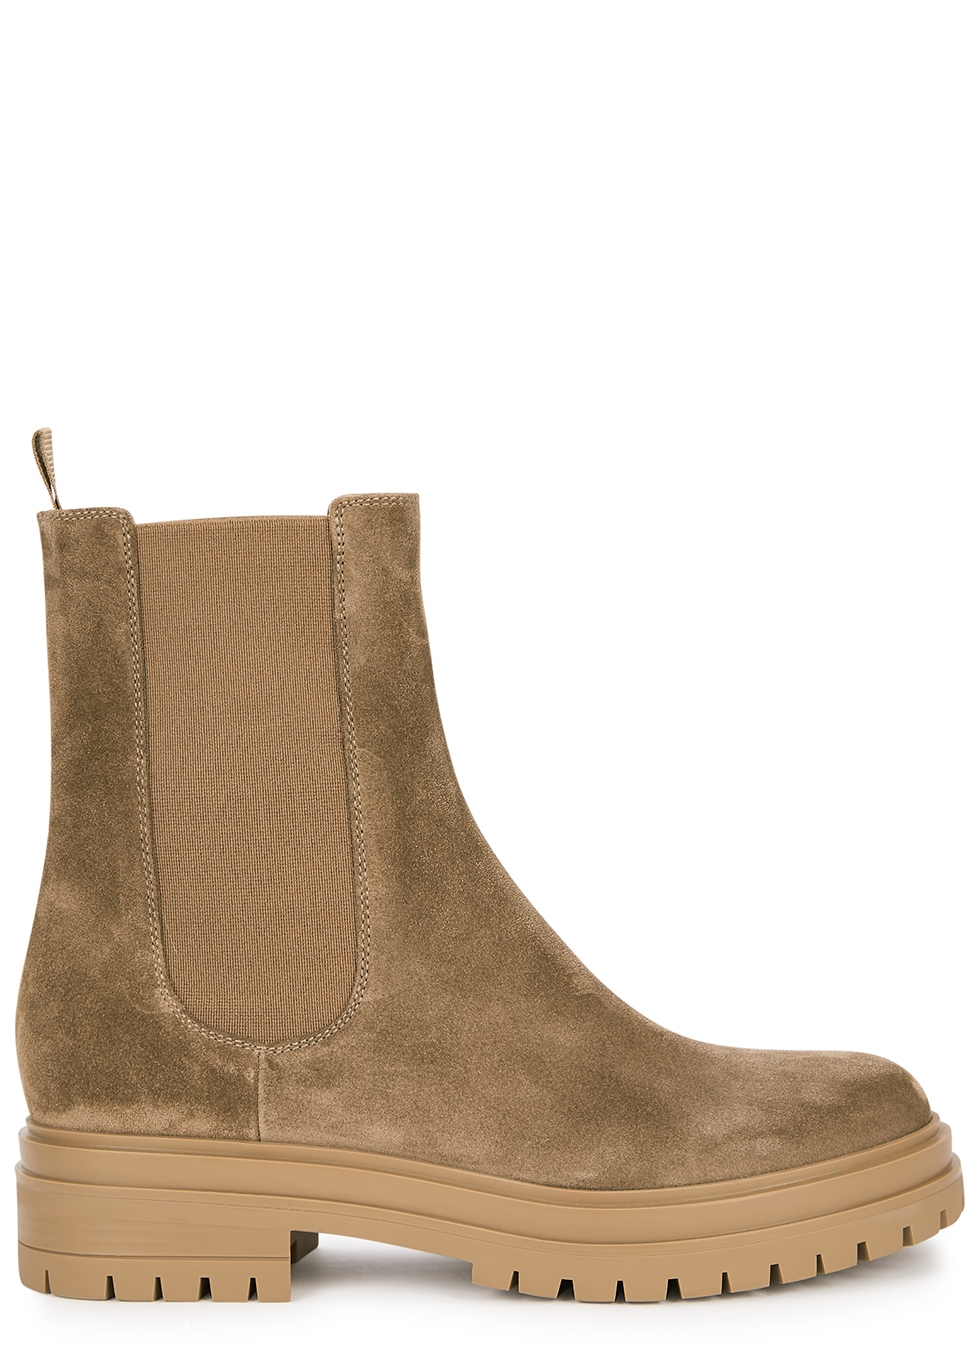 Chester brown suede Chelsea boots